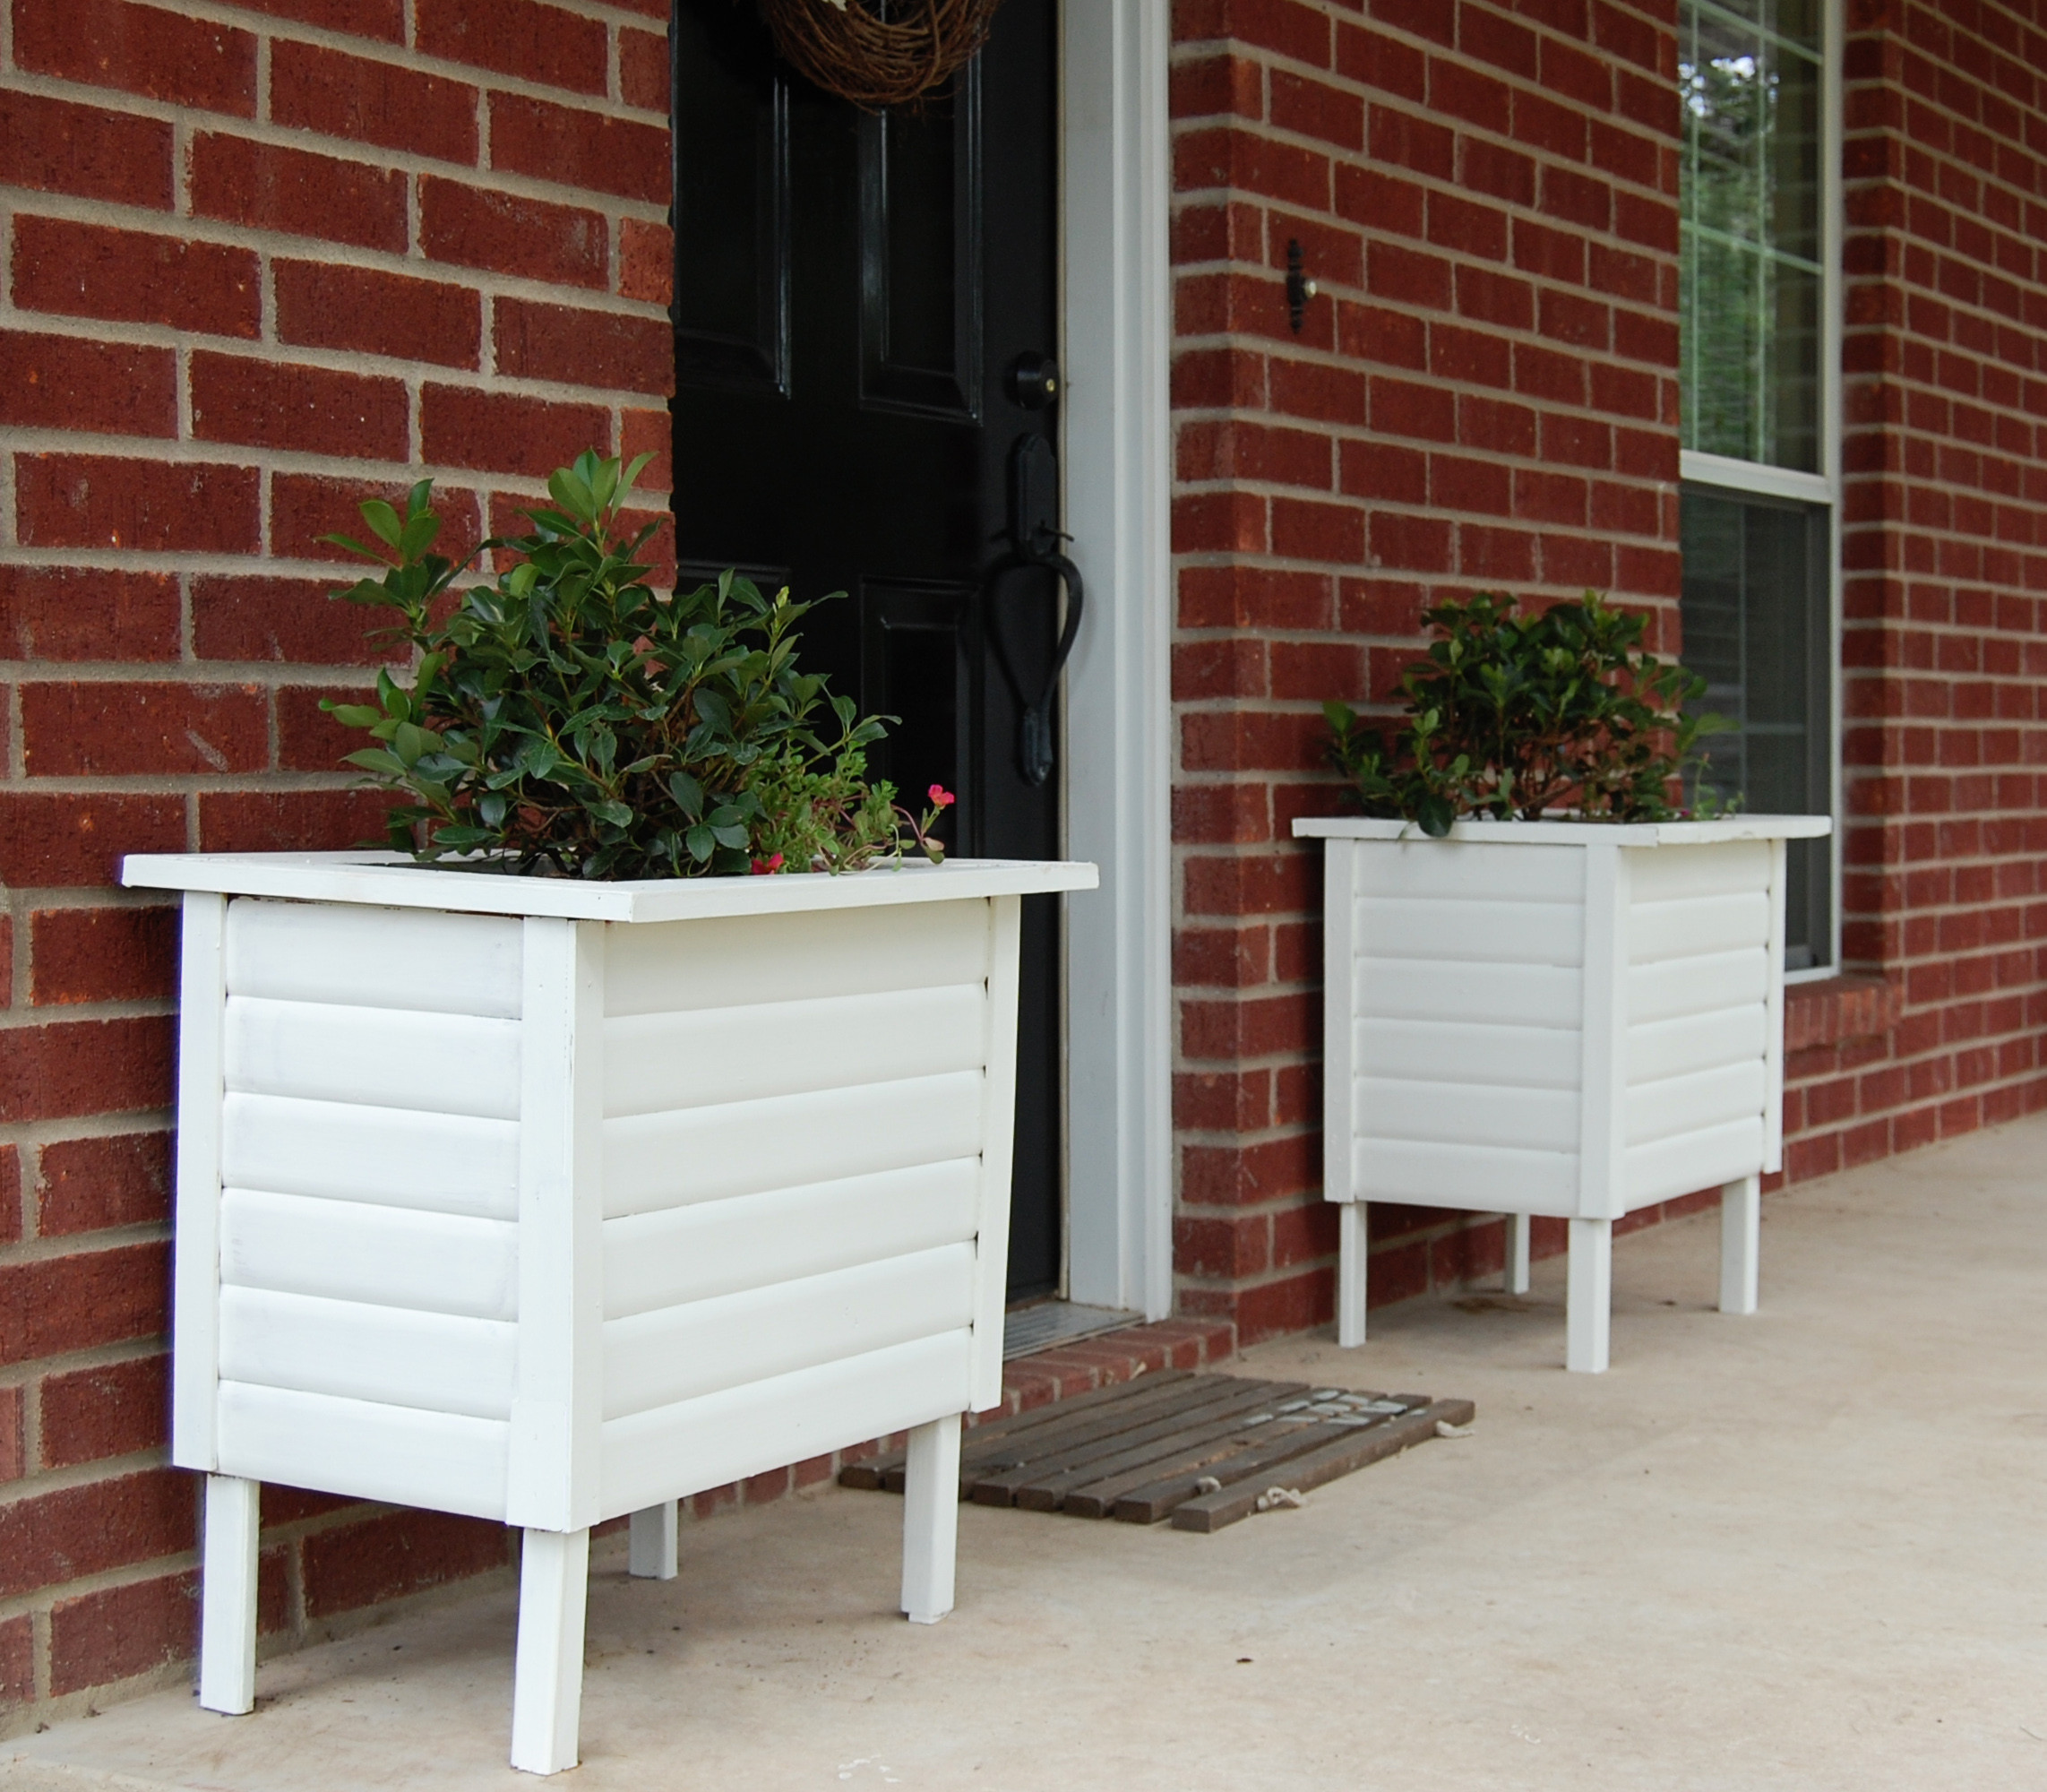 Best ideas about DIY Planter Box . Save or Pin DIY Planter Now.